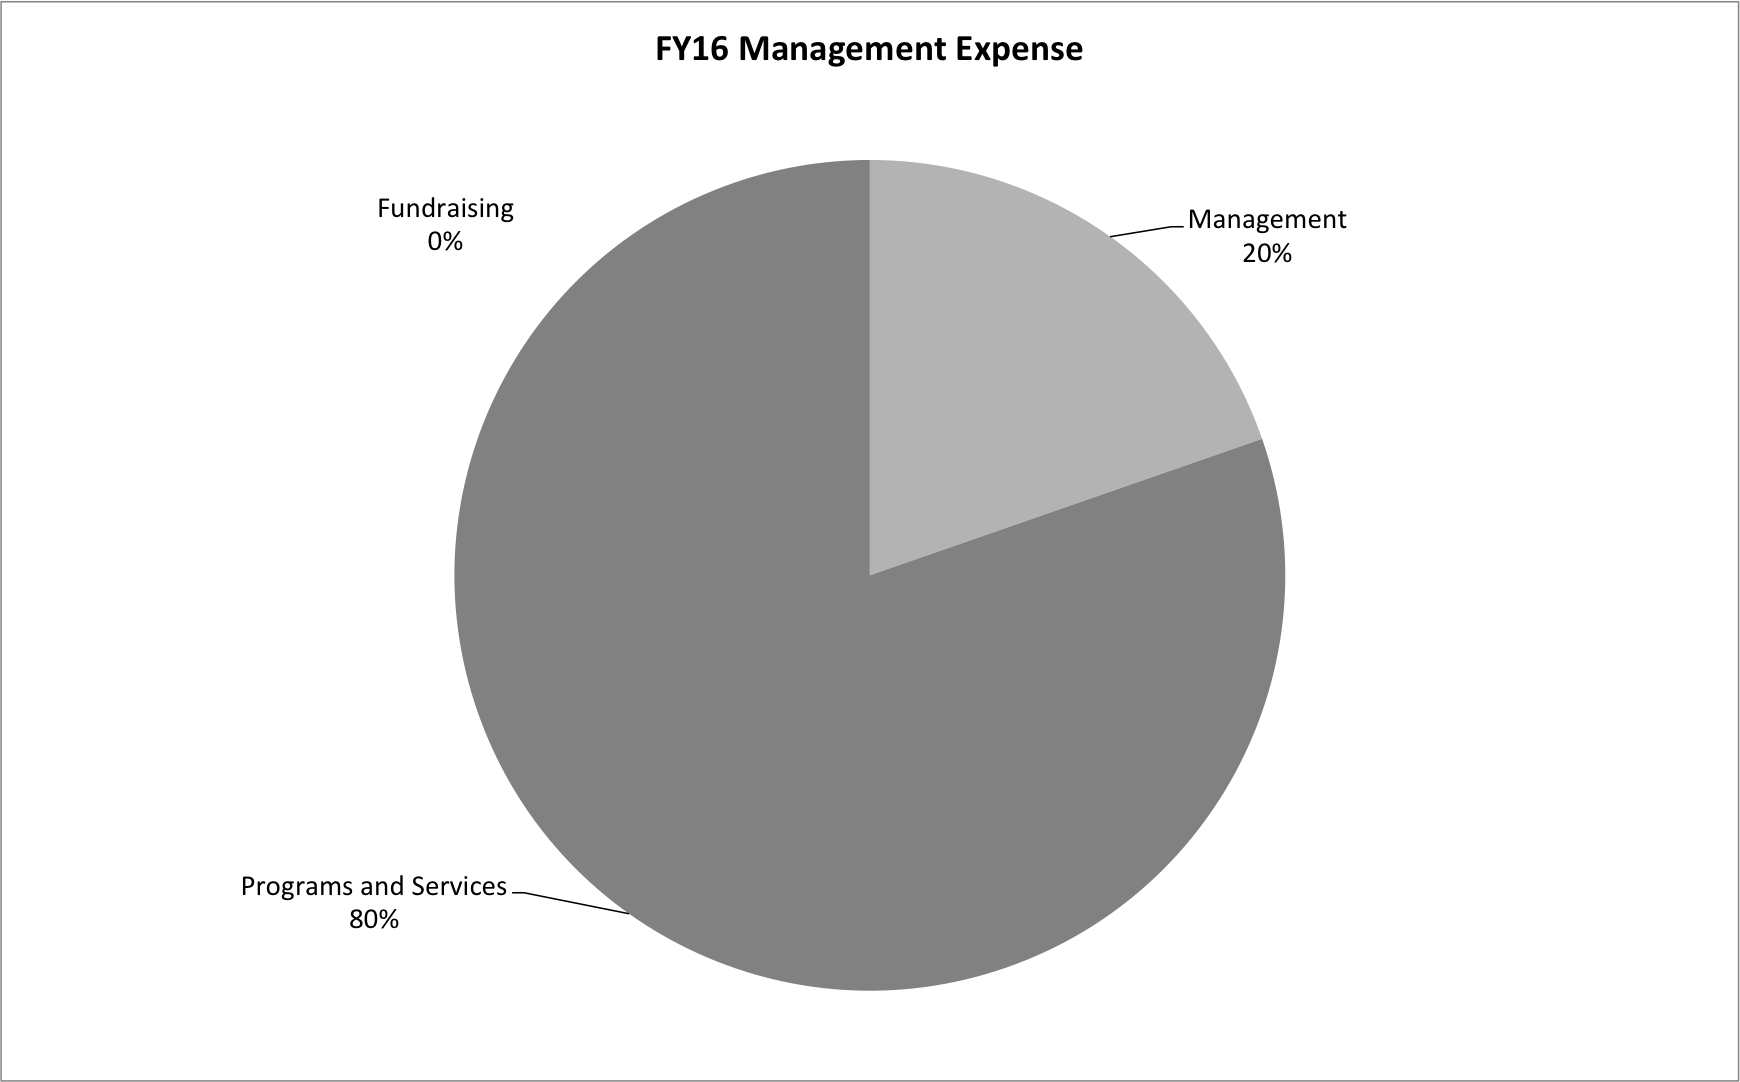 FY16 Management Expenses